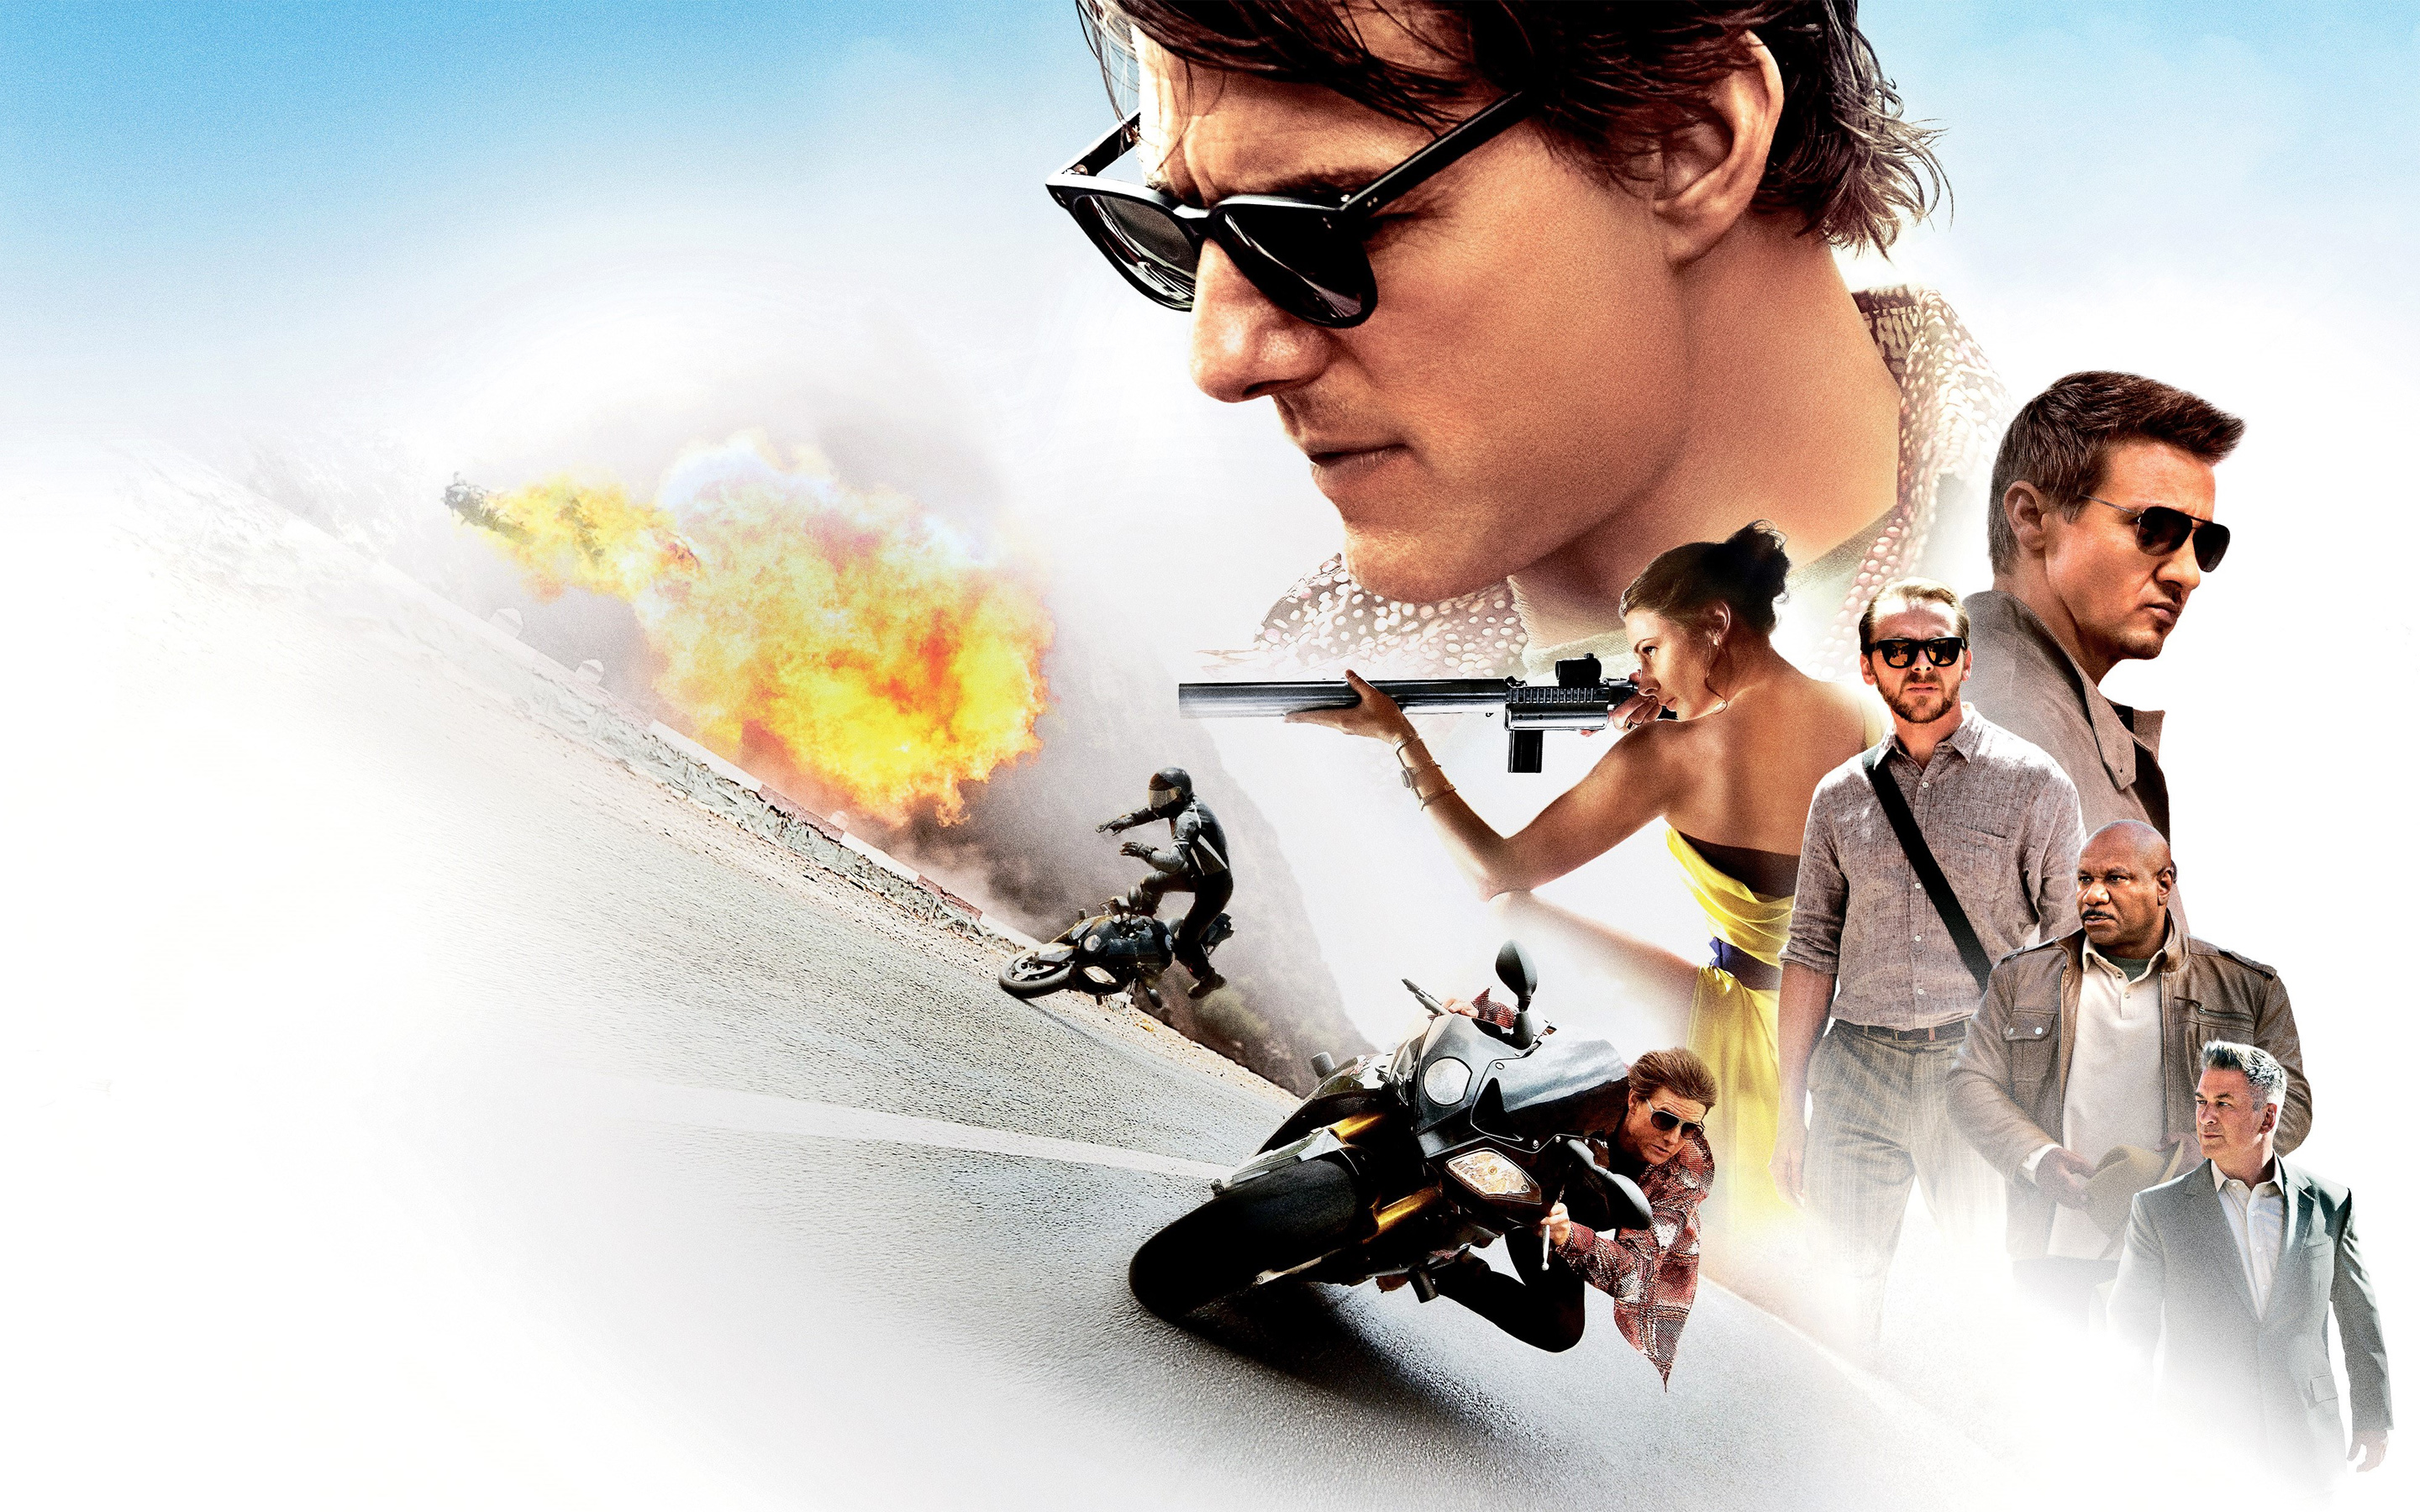 HD Wallpapers Mission Impossible Rogue Nation 2015